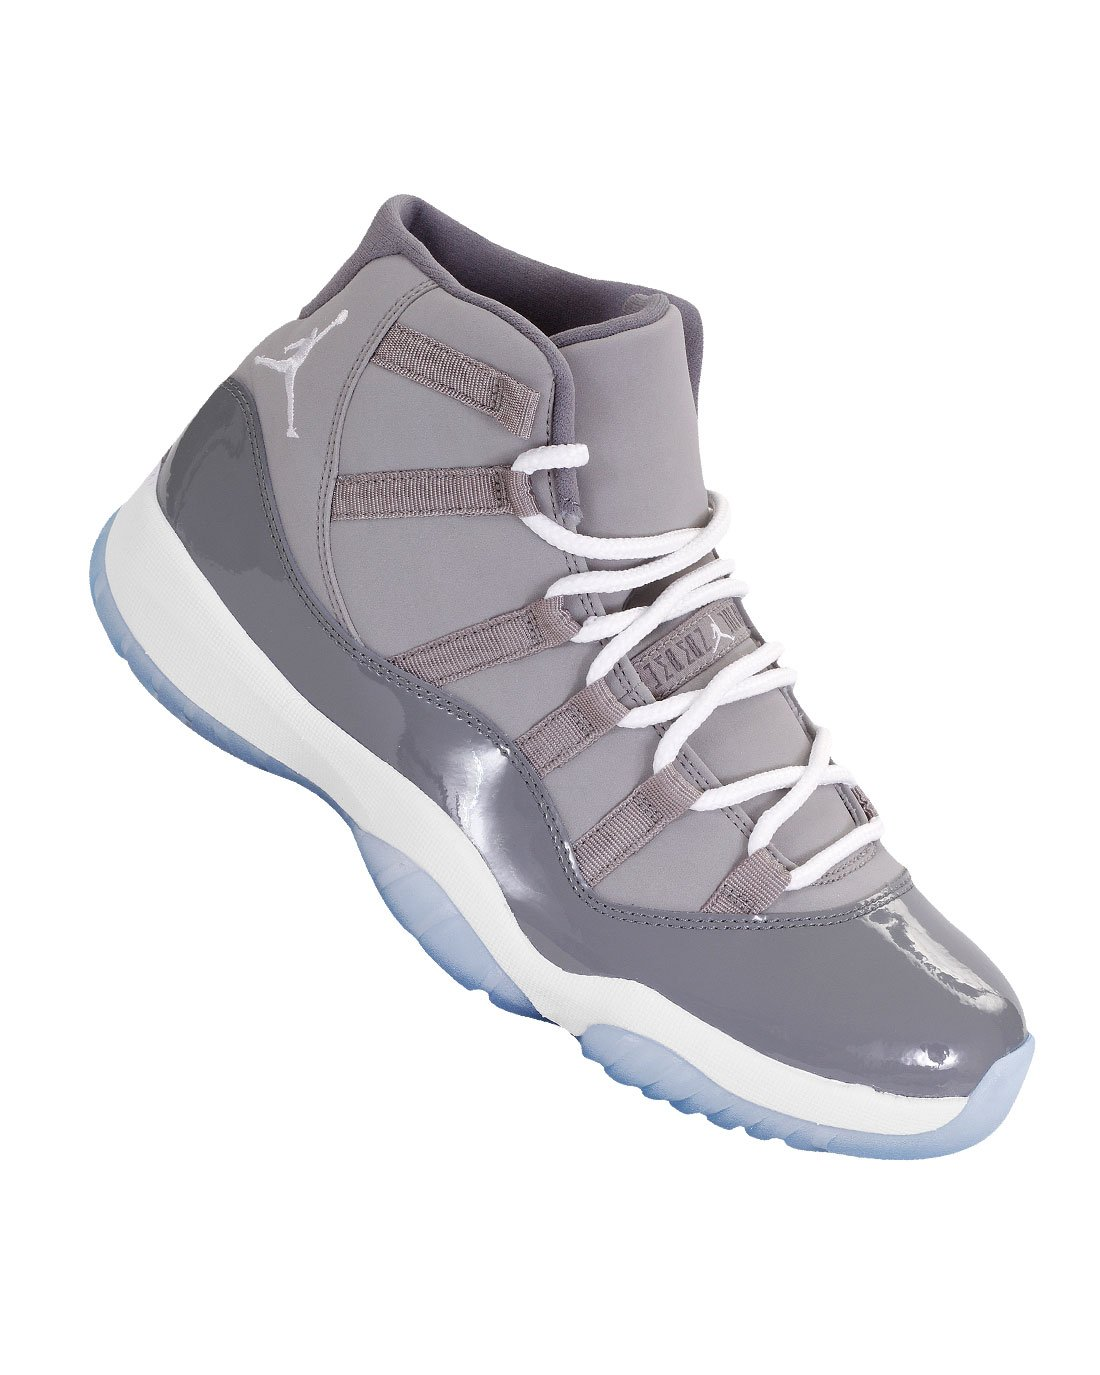 Jordan Cool Grey 11 Price